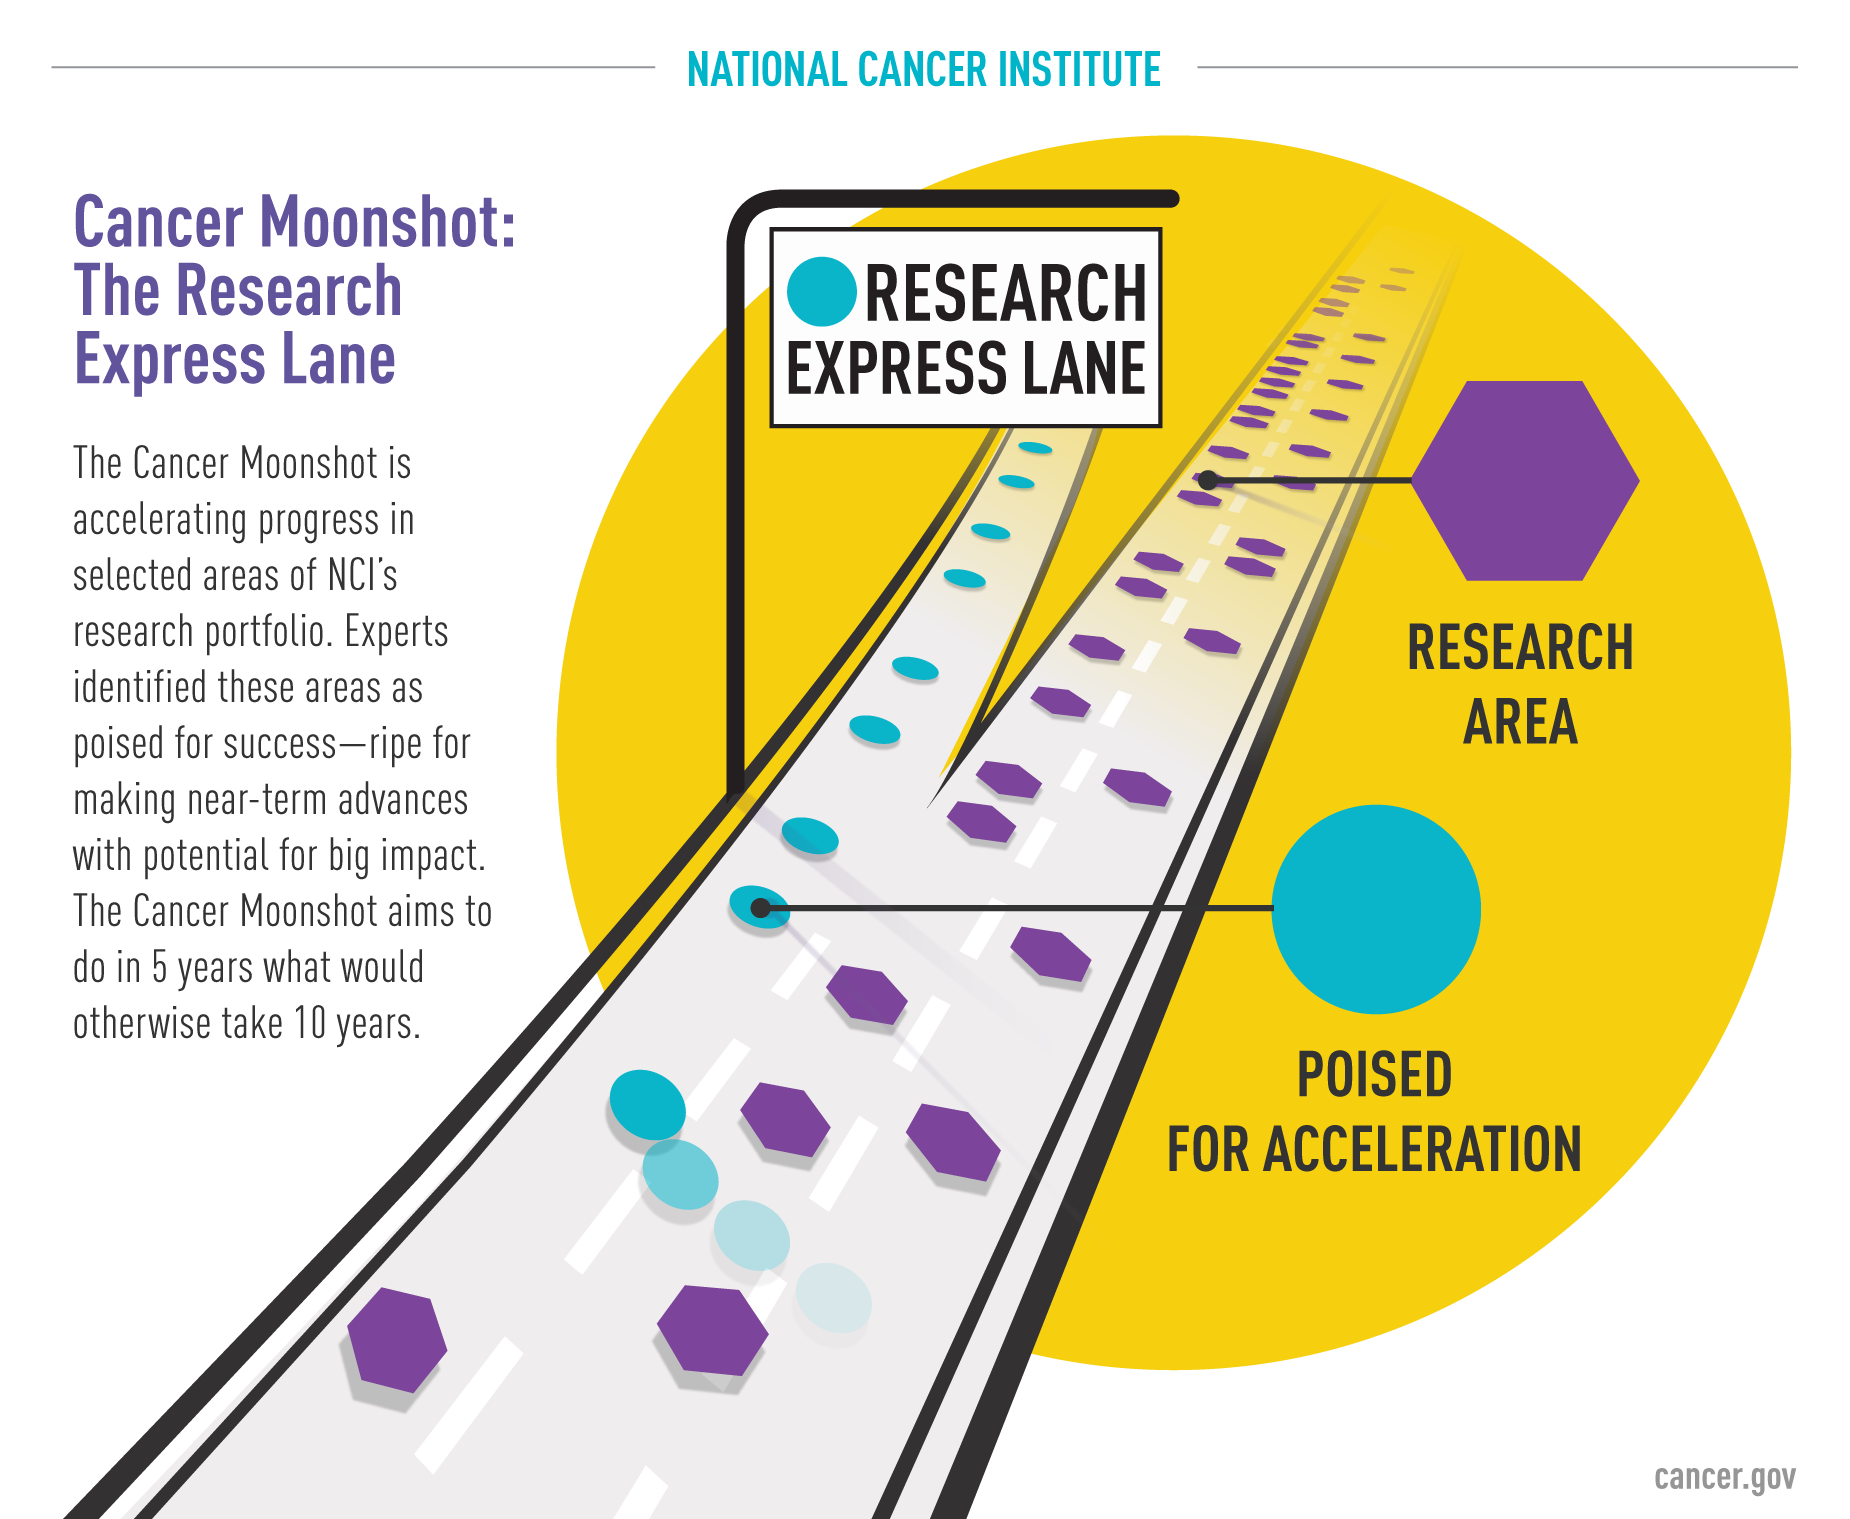 Illustration showing that the Cancer Moonshot is similar to an express lane on a highway when it comes to accelerating cancer research